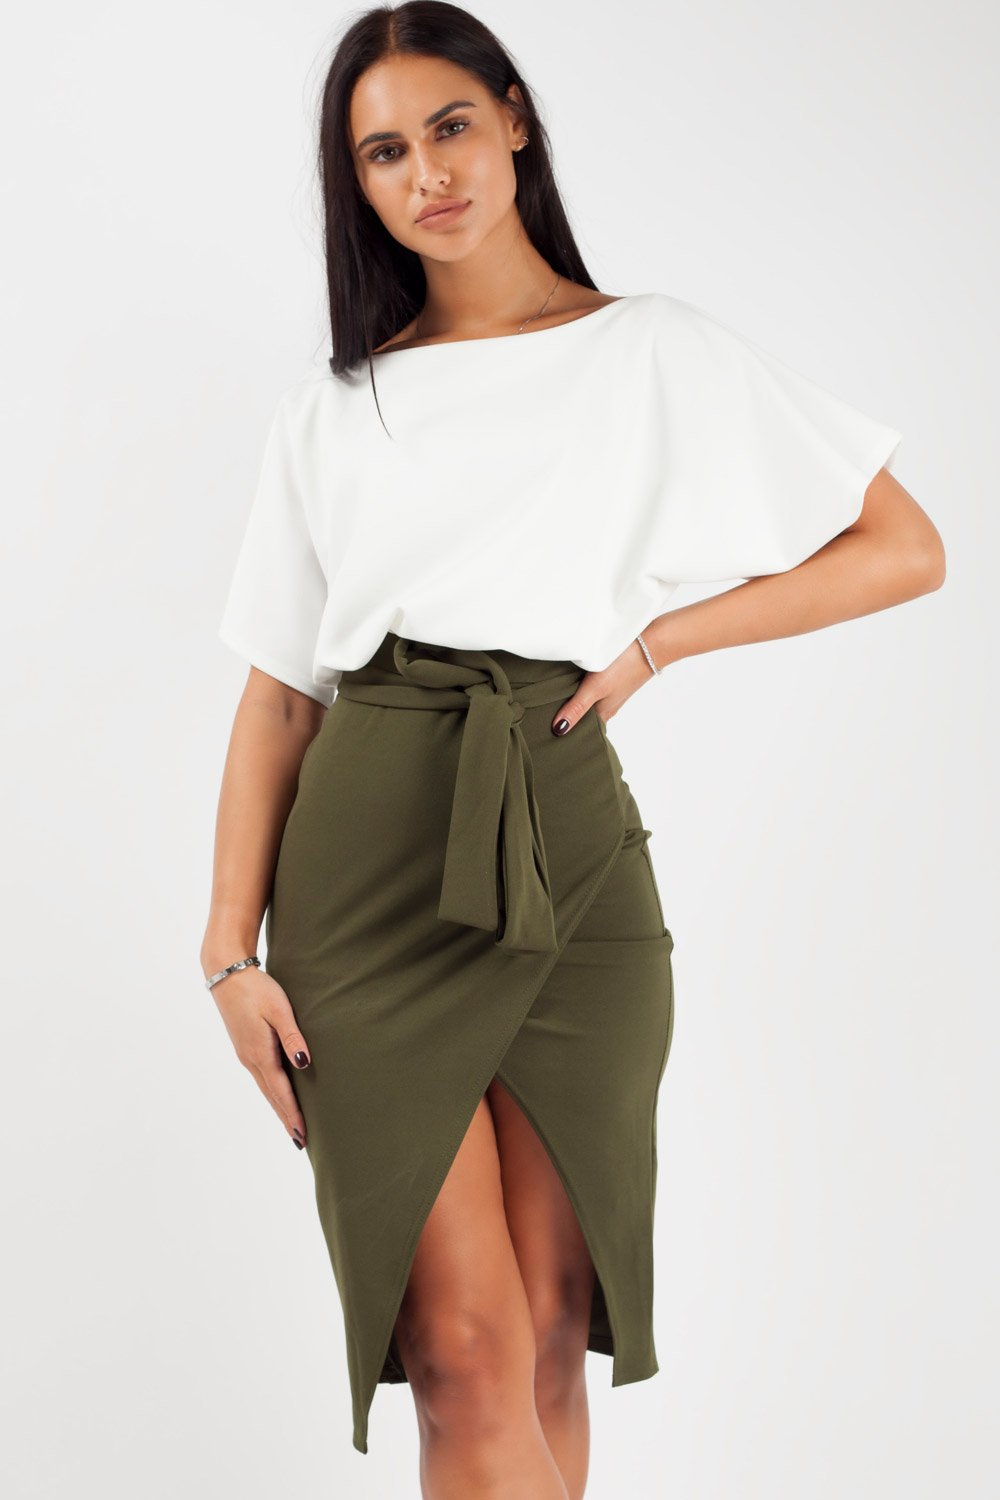 warp midi dress khaki contrast